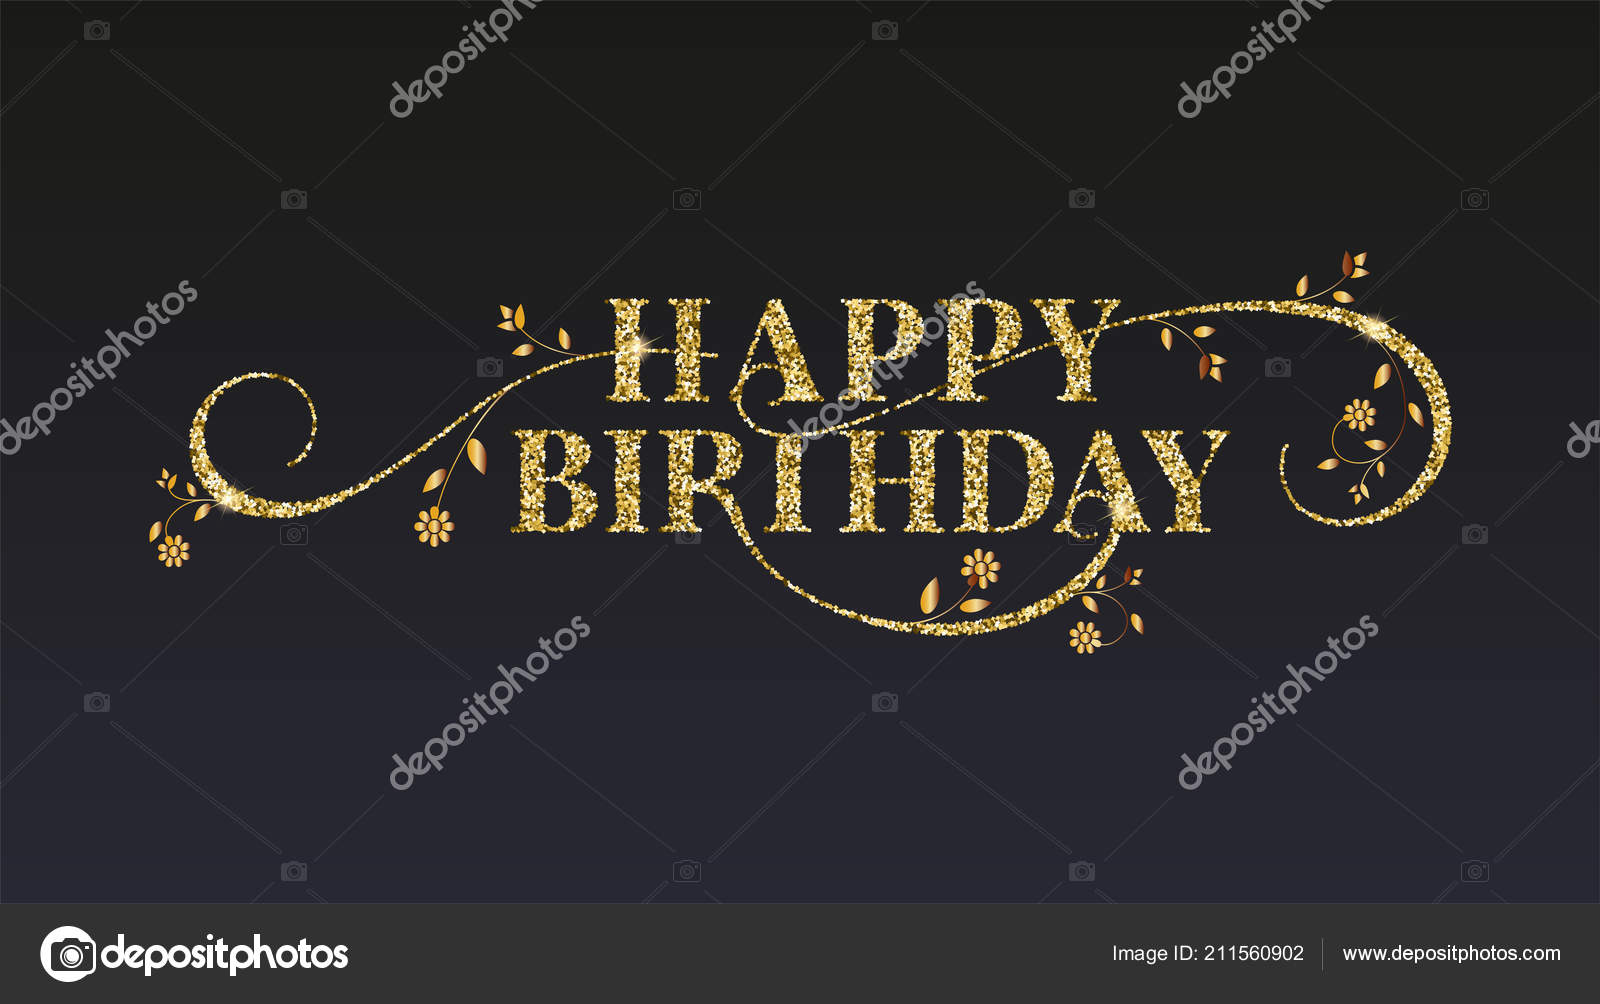 Happy Birthday Greetings Card Golden Glitter Texture On Vintage Text Design Of Message With Sparkling Dust Hand Drawing Flowers Black Background